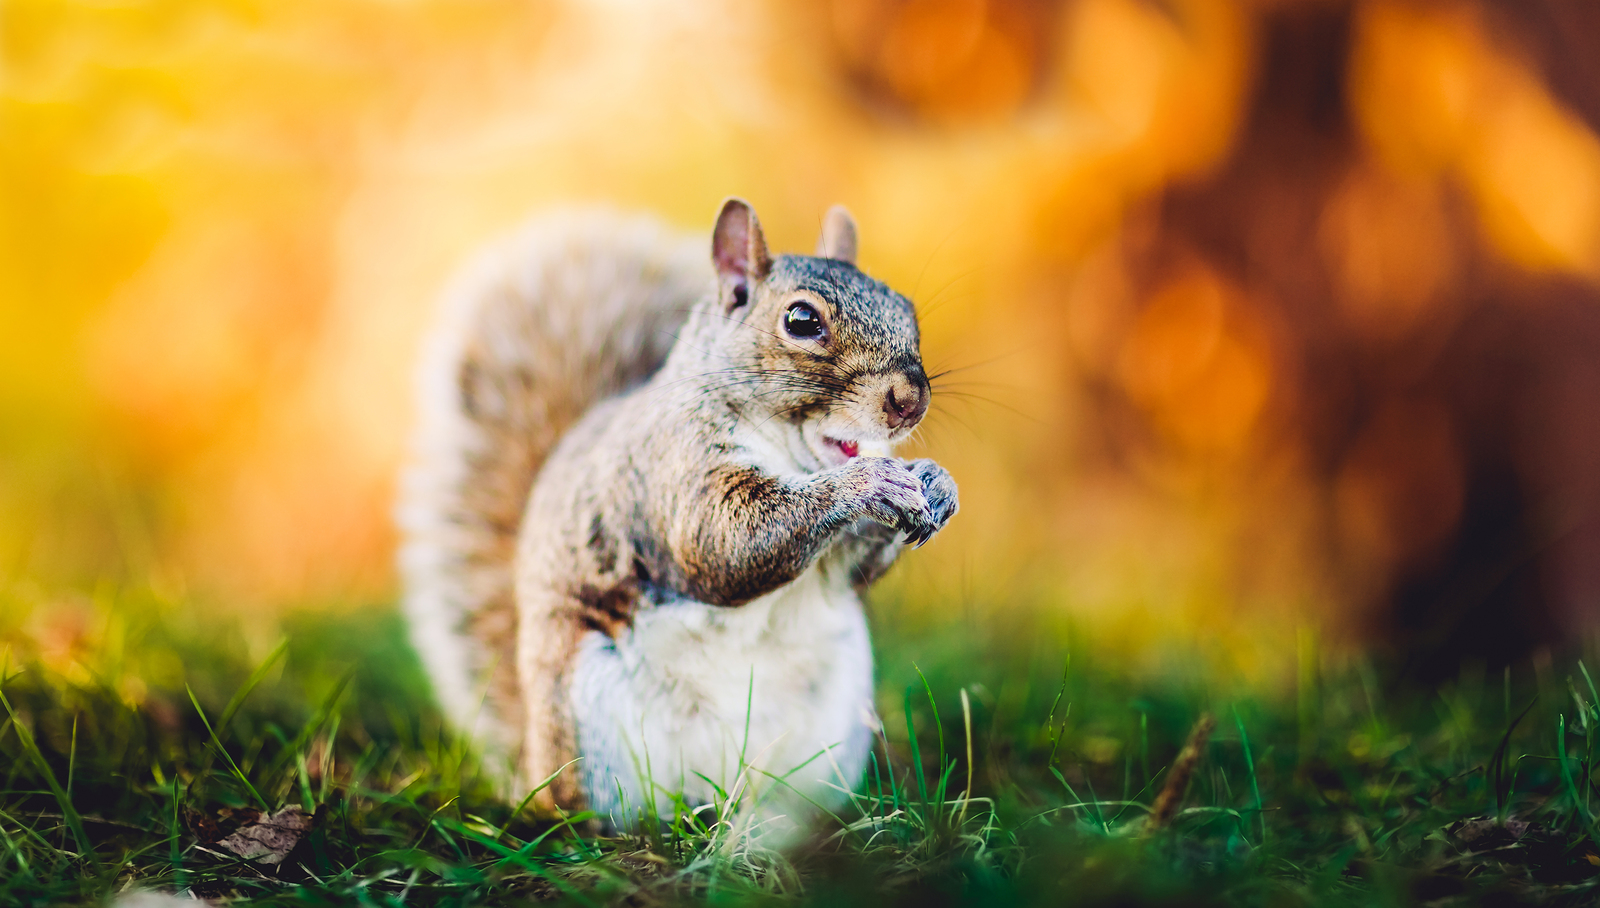 Beautiful Squirrel On Yellow Background And Green Grass. Amazing_1528959417327